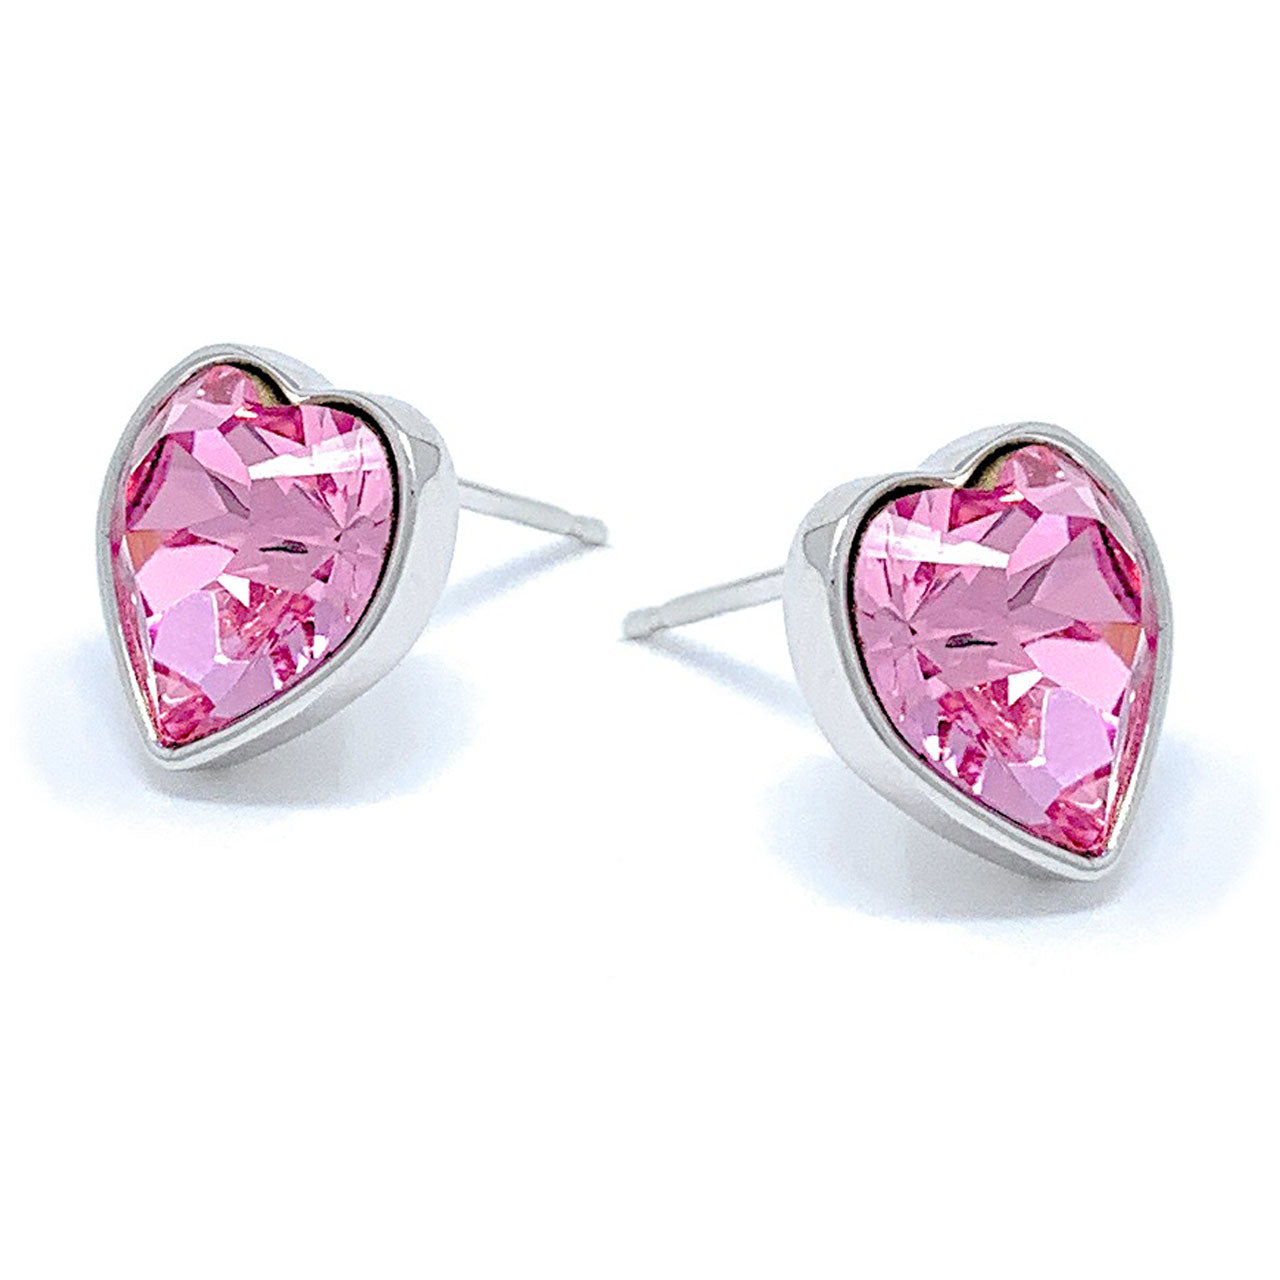 Lucia Stud Earrings with Pink Light Rose Heart Crystals from Swarovski Silver Toned Rhodium Plated - Ed Heart